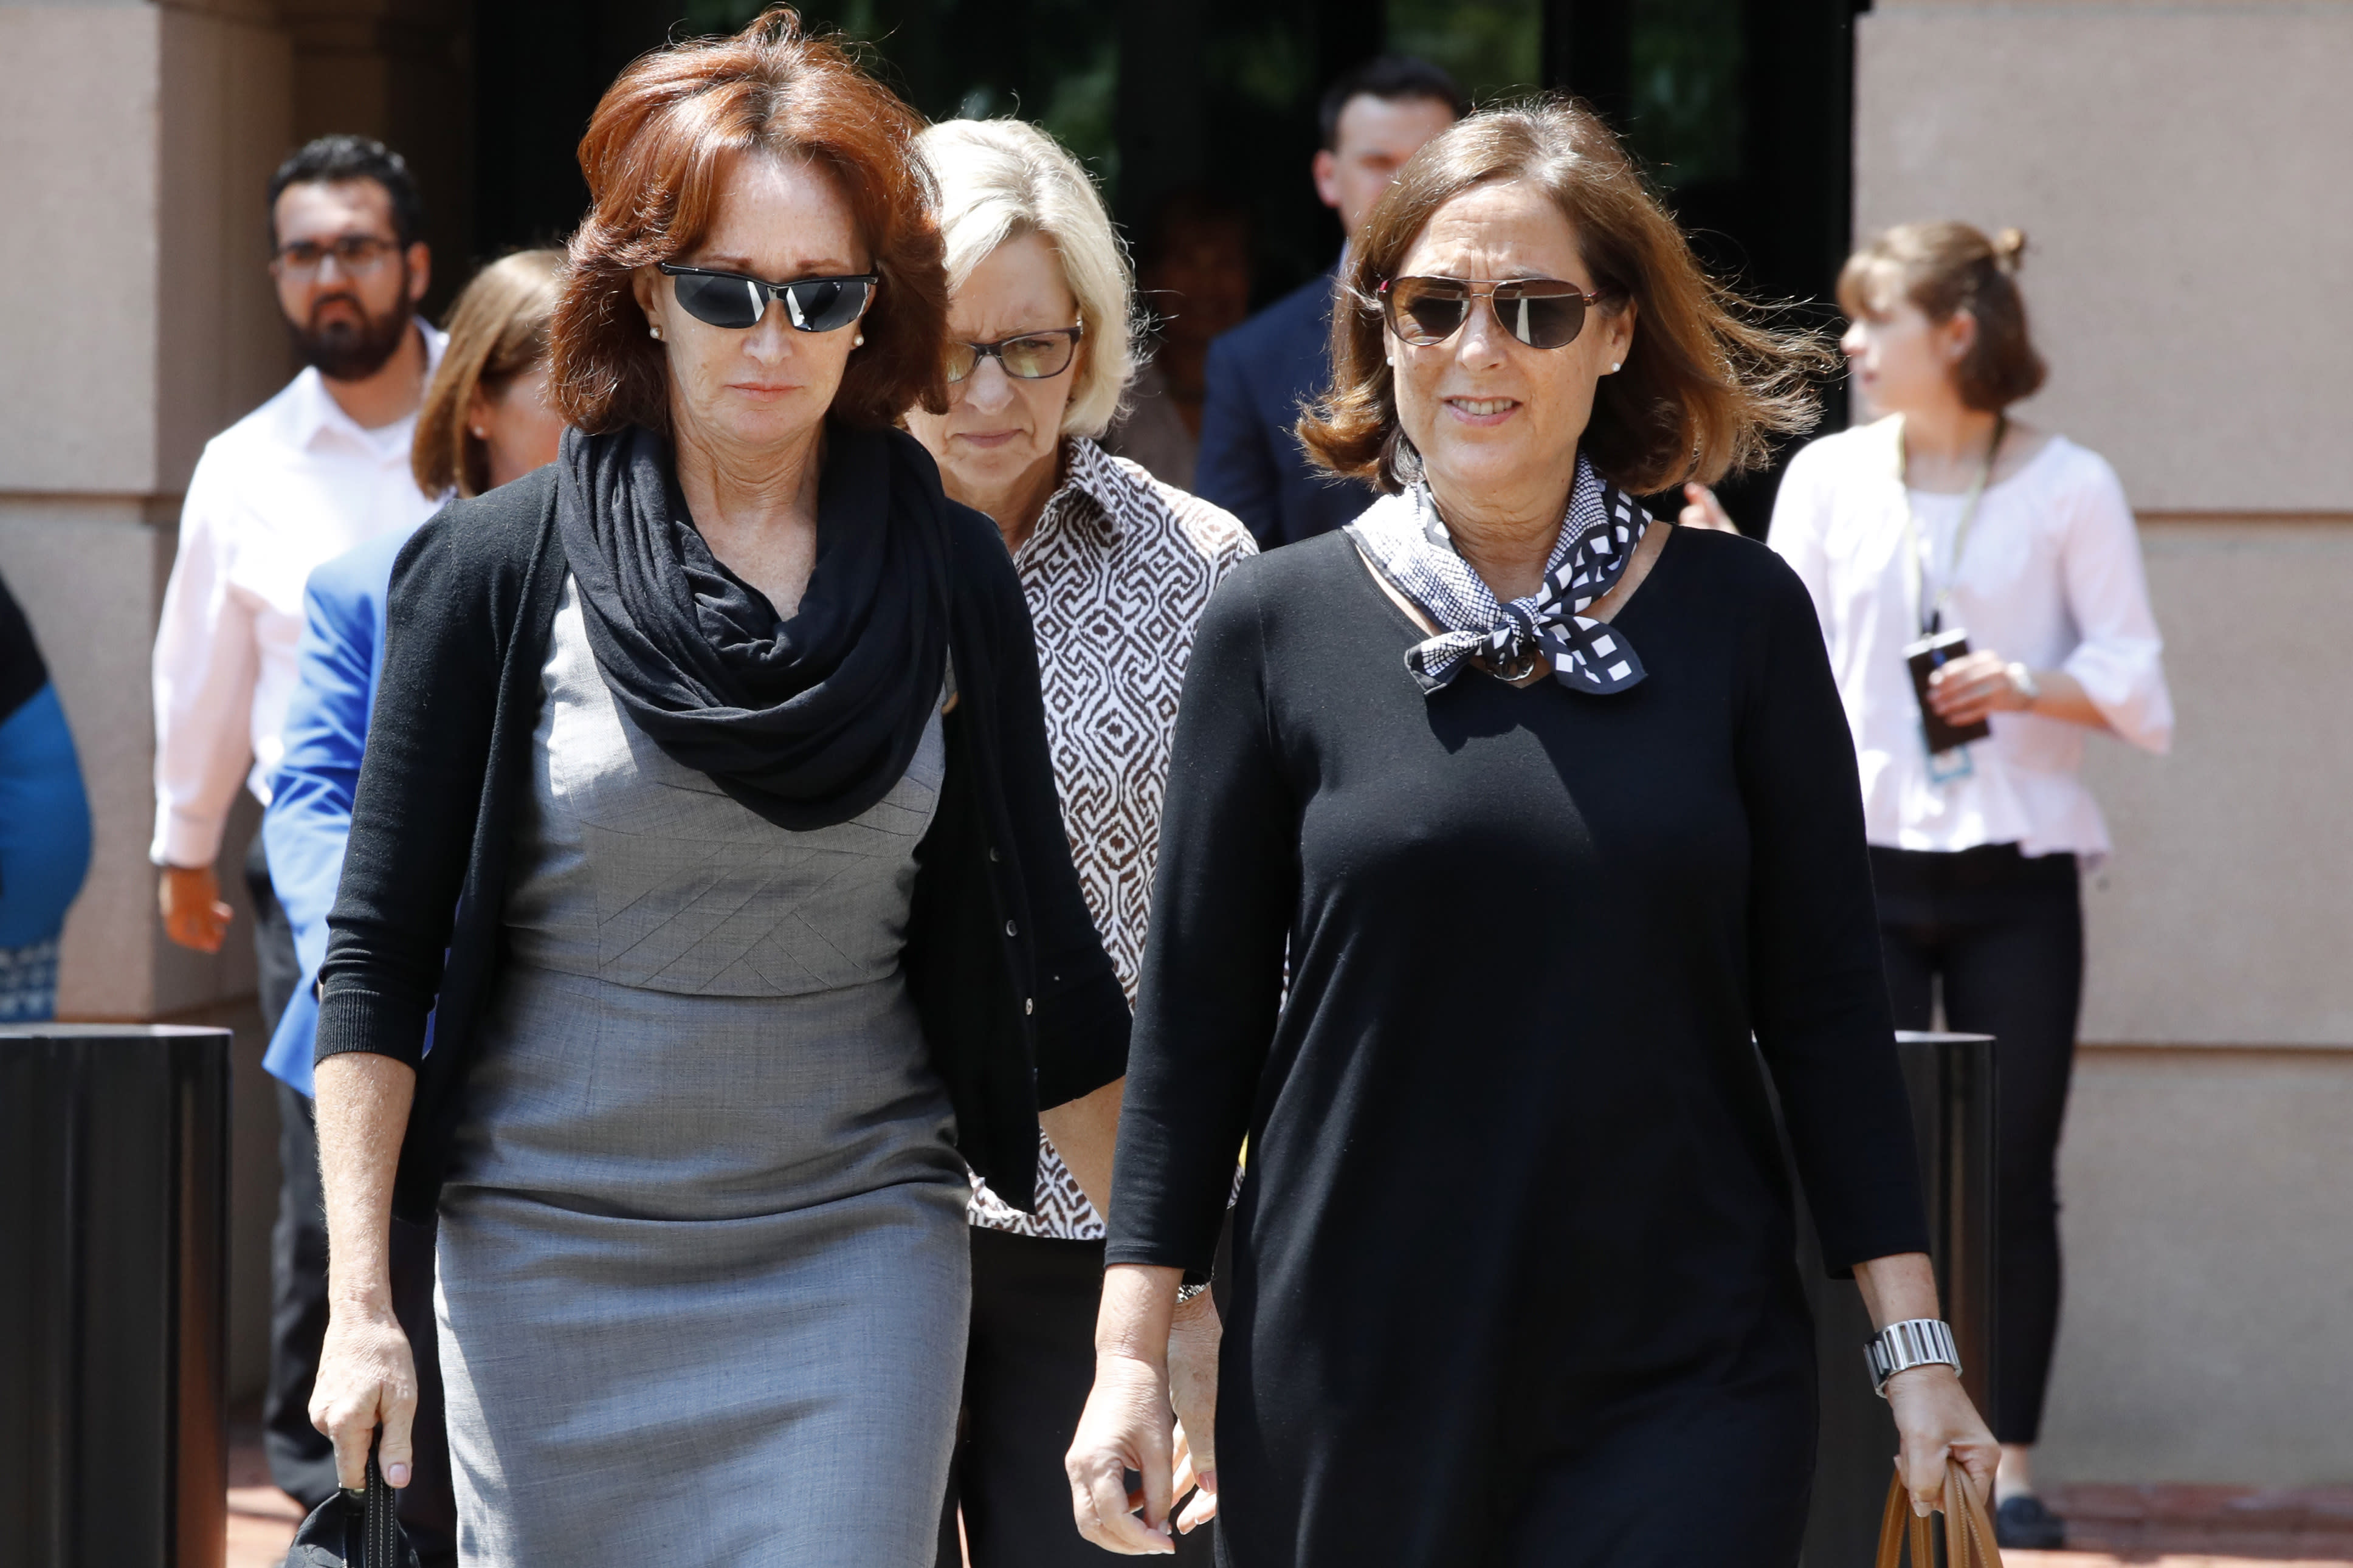 Kathleen Manafort, left, wife of former Trump campaign chairman Paul Manafort, leaves federal court during a break in her husband's trial on bank fraud and tax evasion in Alexandria, Va., Tuesday, Aug. 7, 2018. (AP Photo/Jacquelyn Martin)